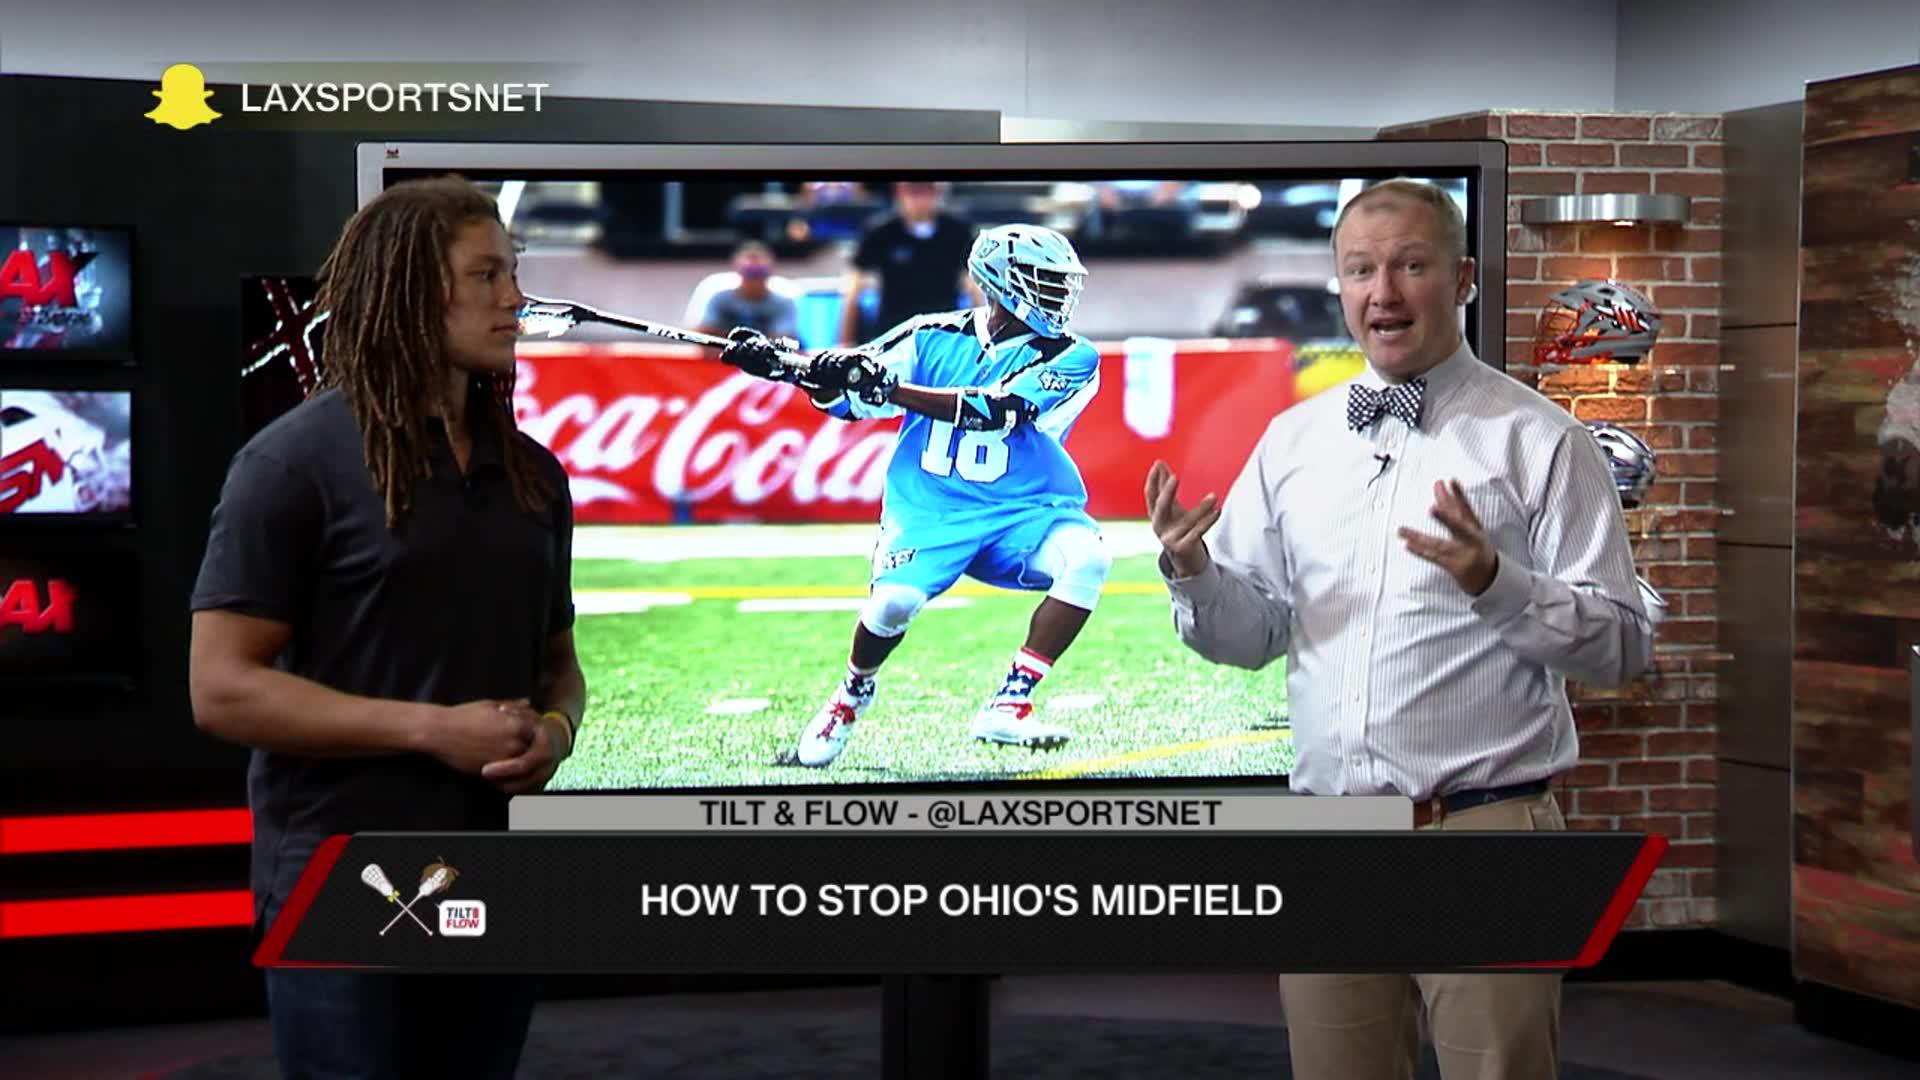 How to Stop Ohio's Midfield